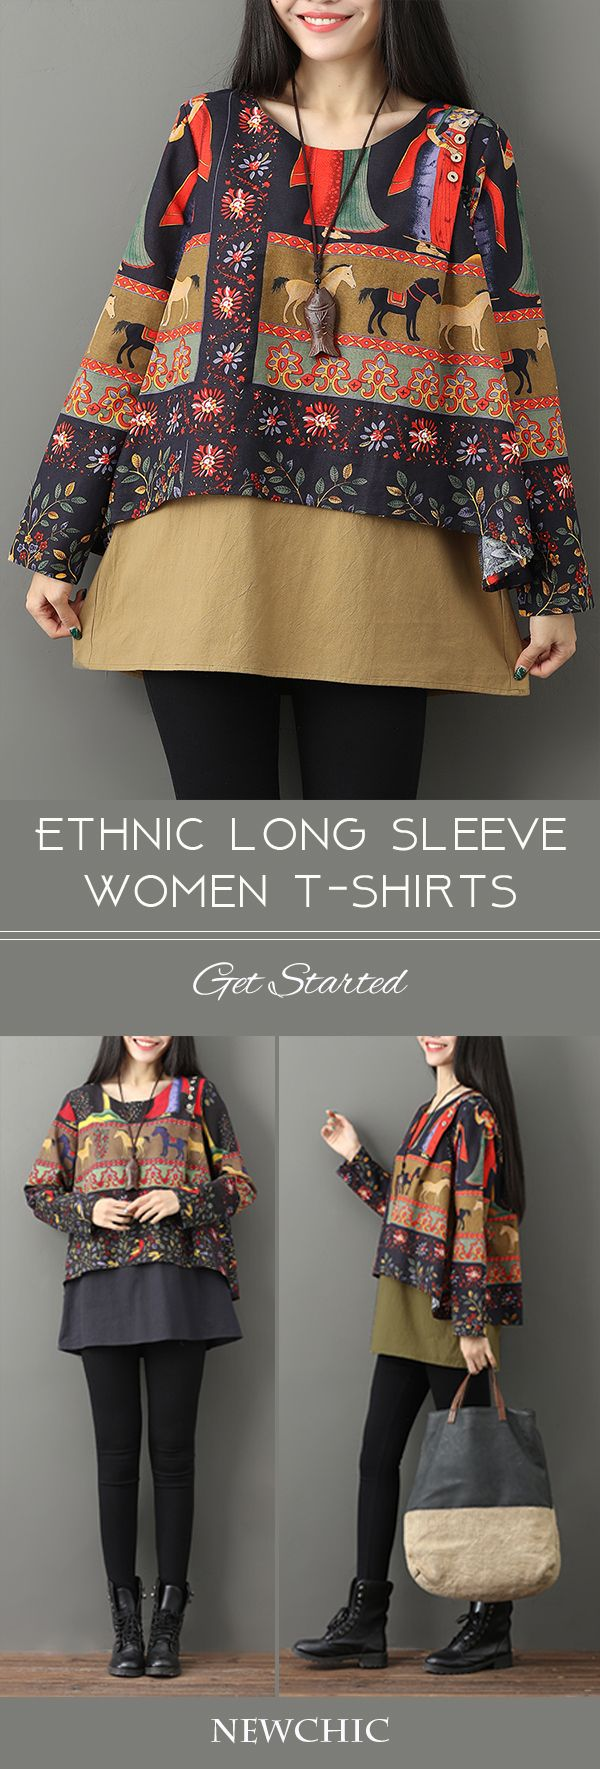 [Newchic Online Shopping] 46%OFF Gracila Women's Ethnic Layered Print T-shirts with Long Sleeve and O-neck